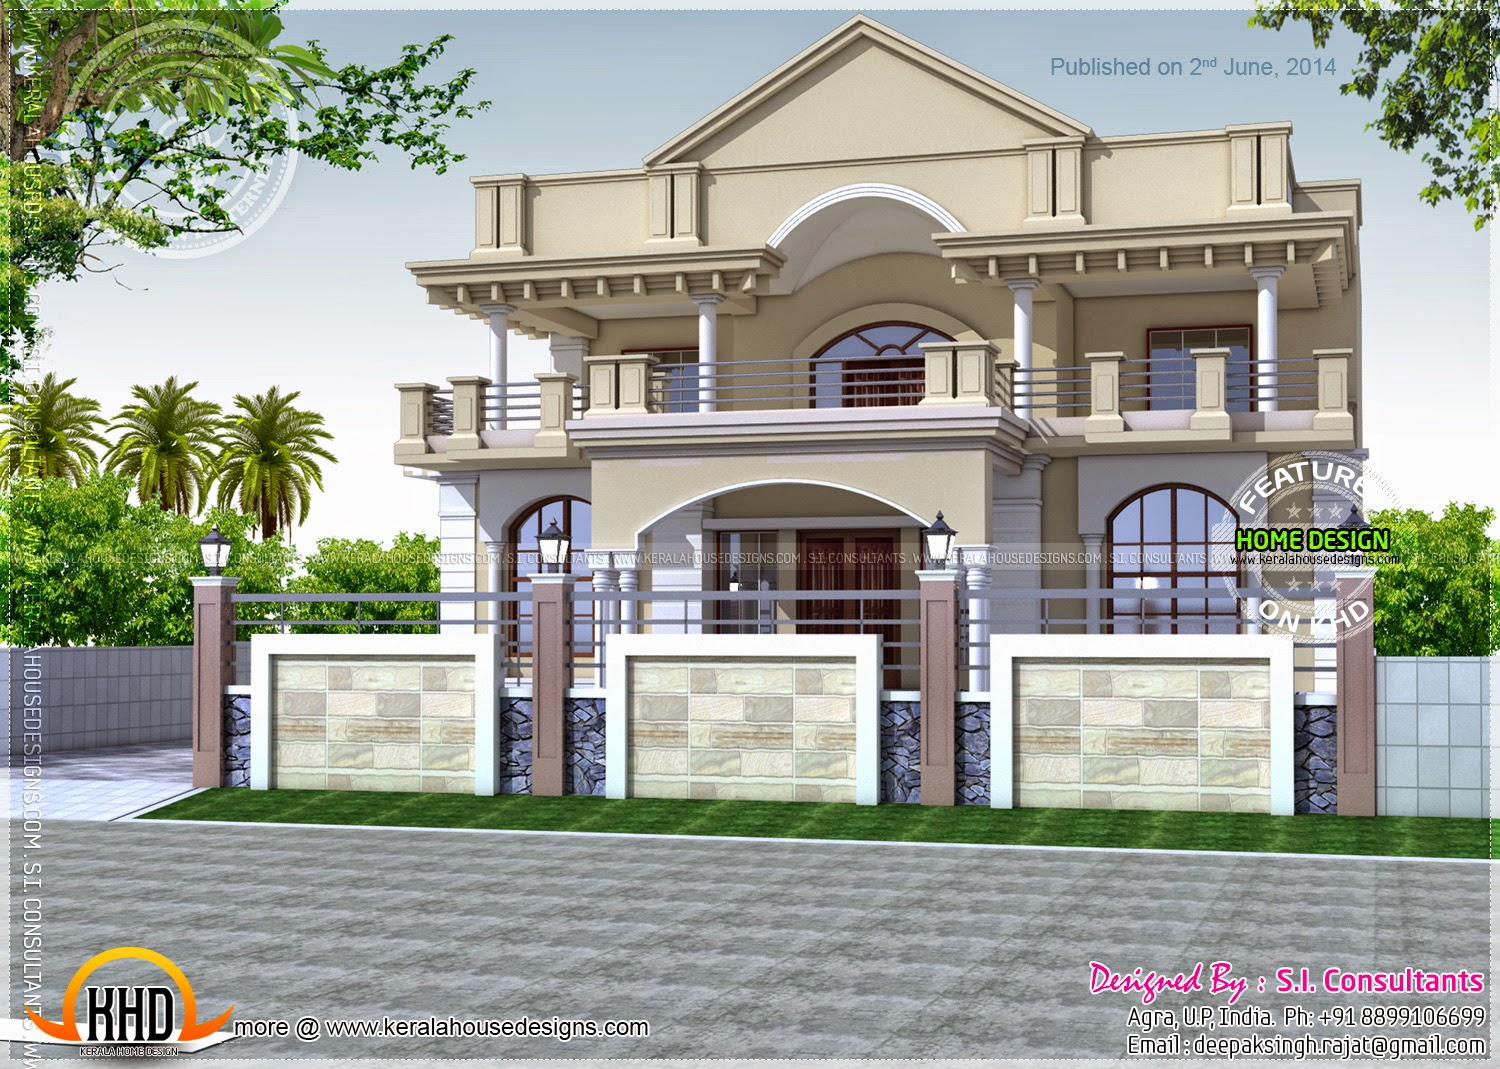 North Indian exterior house ~ Interior Design and floor plans ...